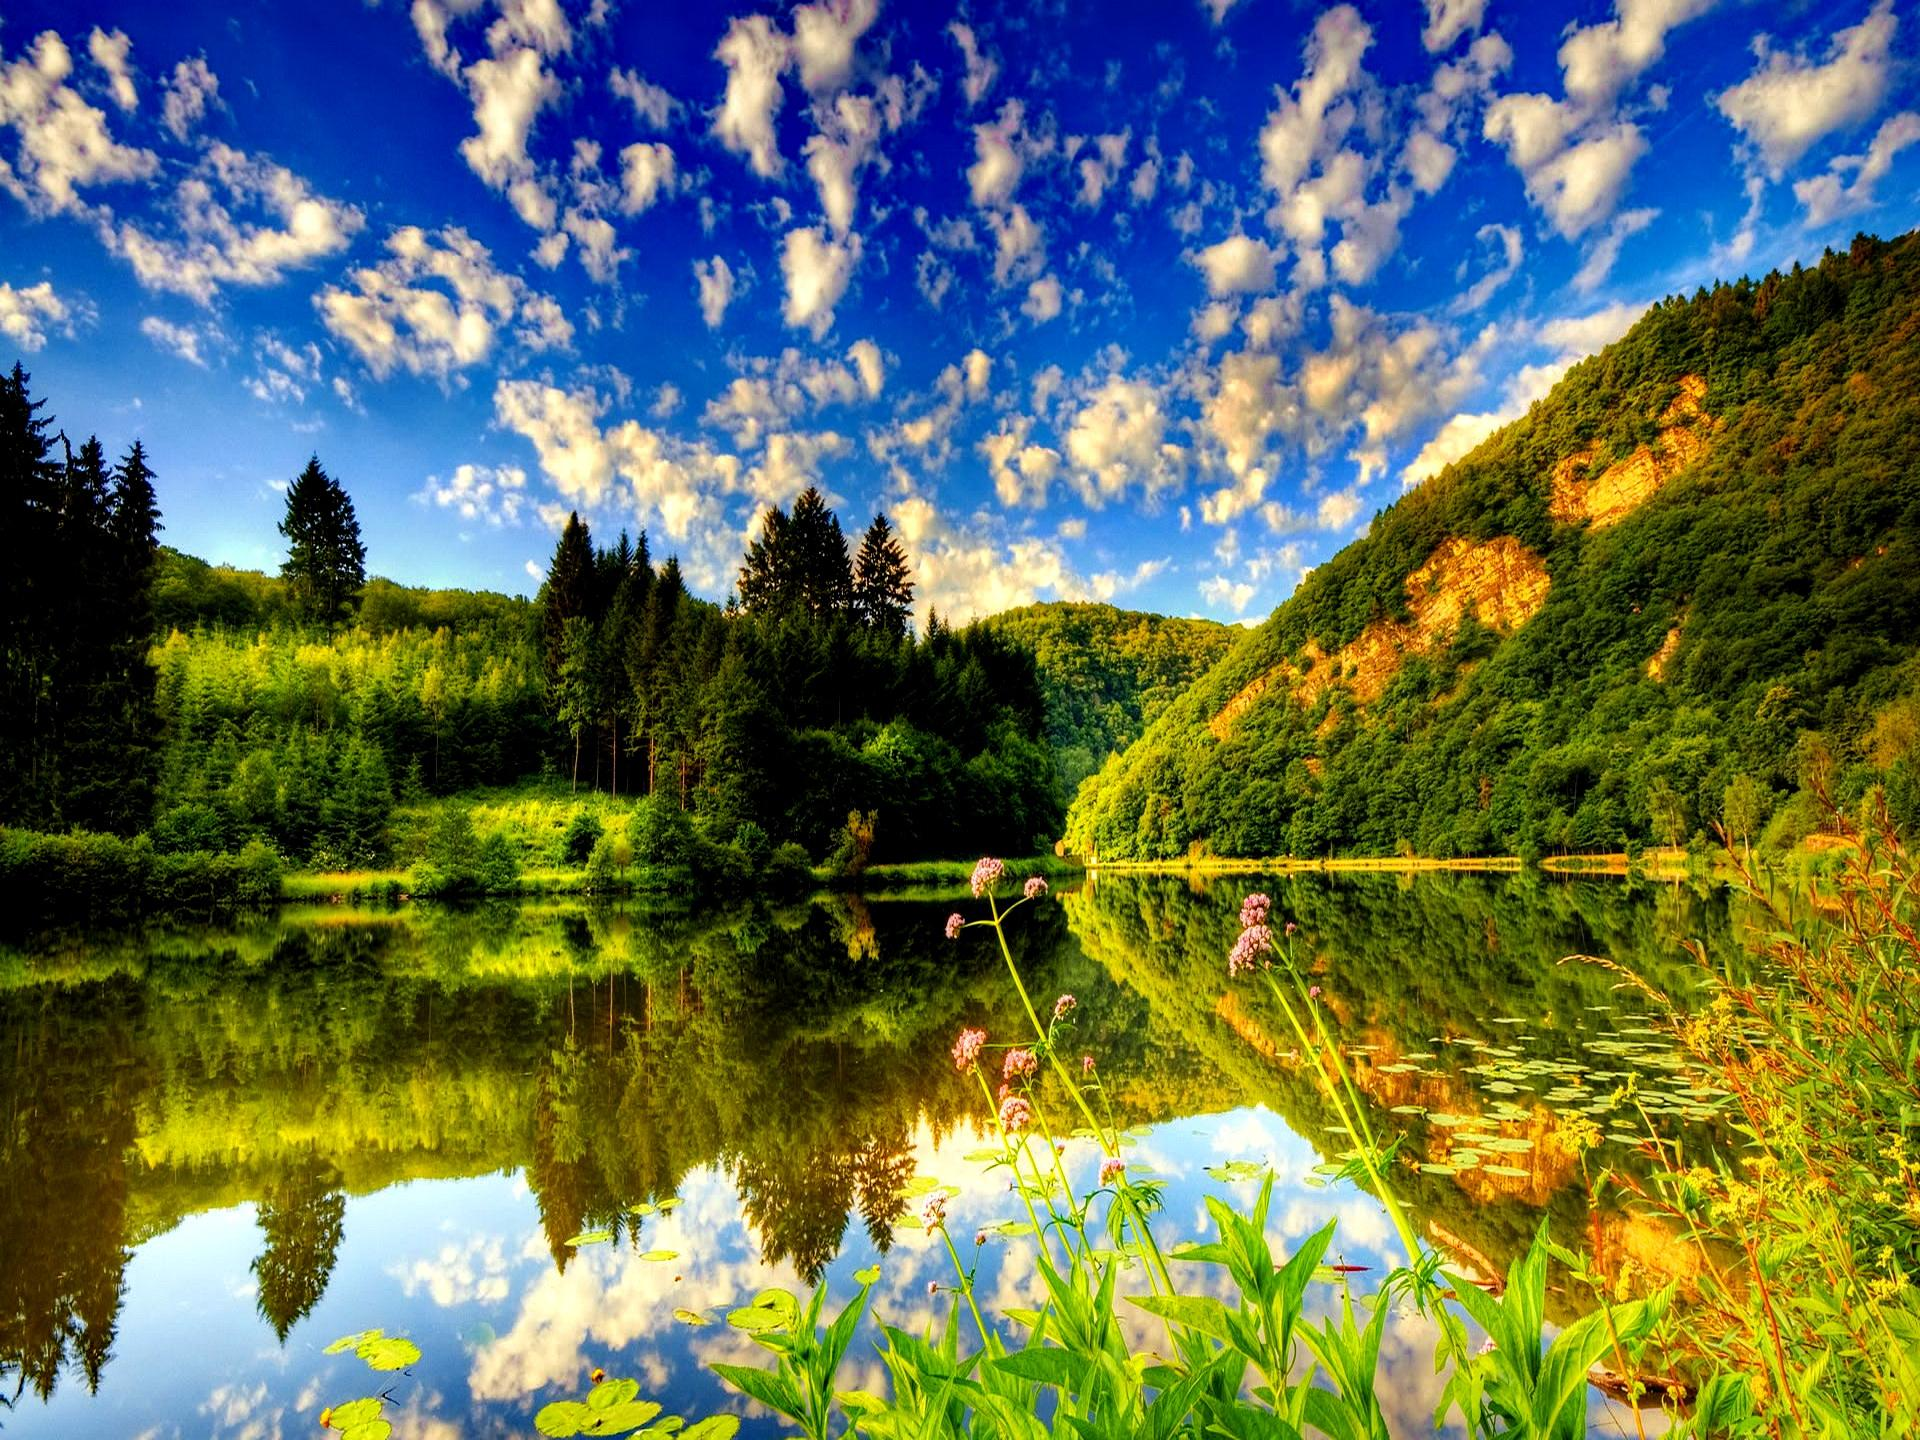 Lake summer nature wallpaper With Resolutions 19201440 Pixel 1920x1440